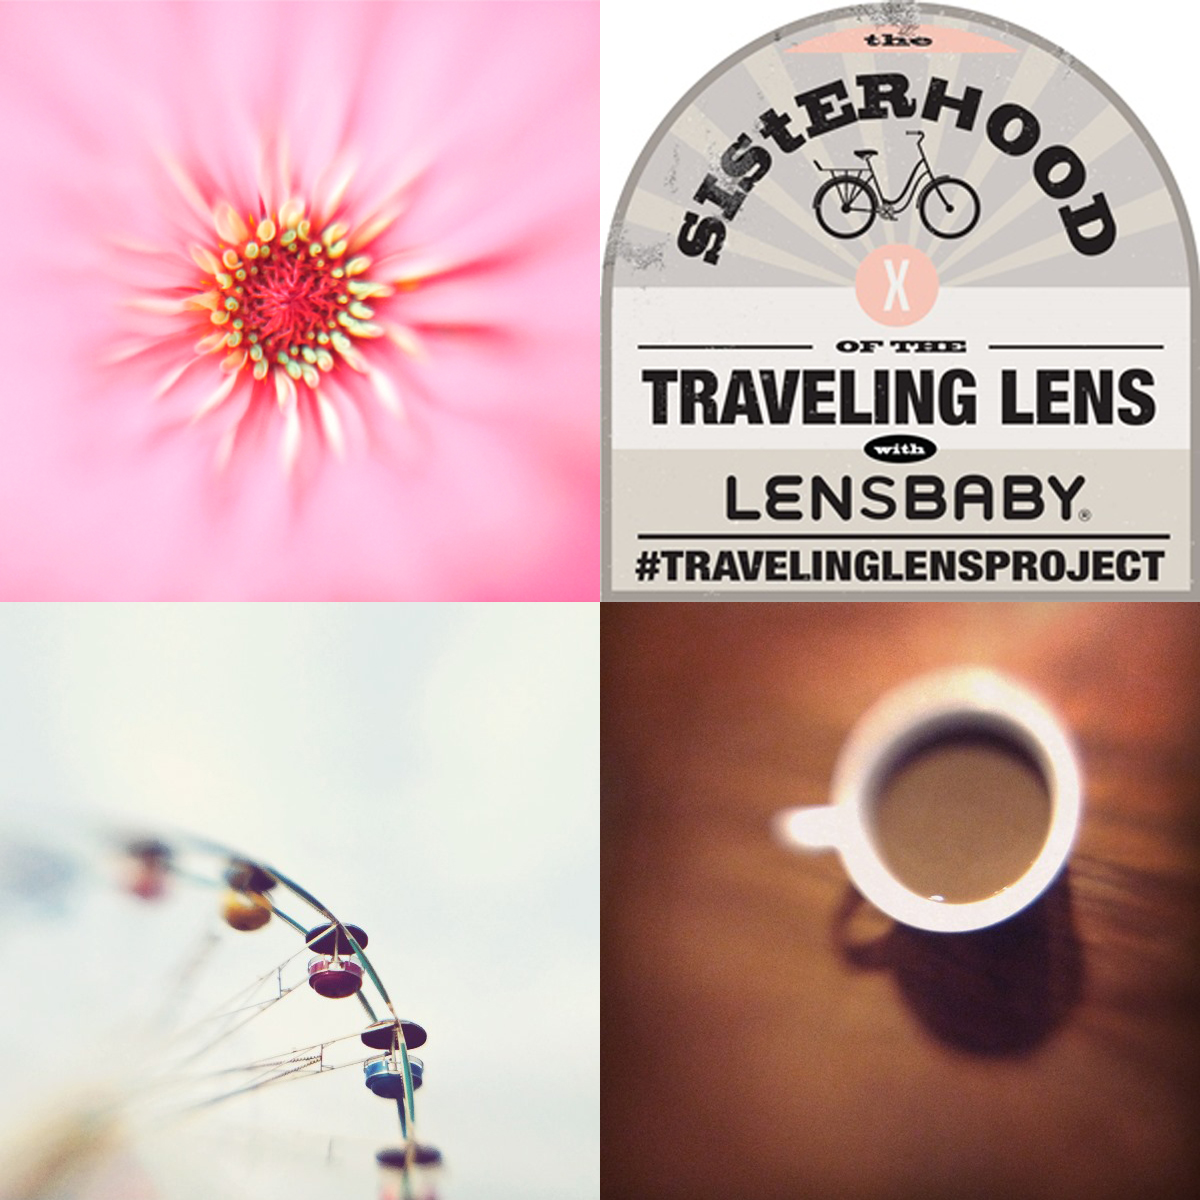 The Traveling Lens Project